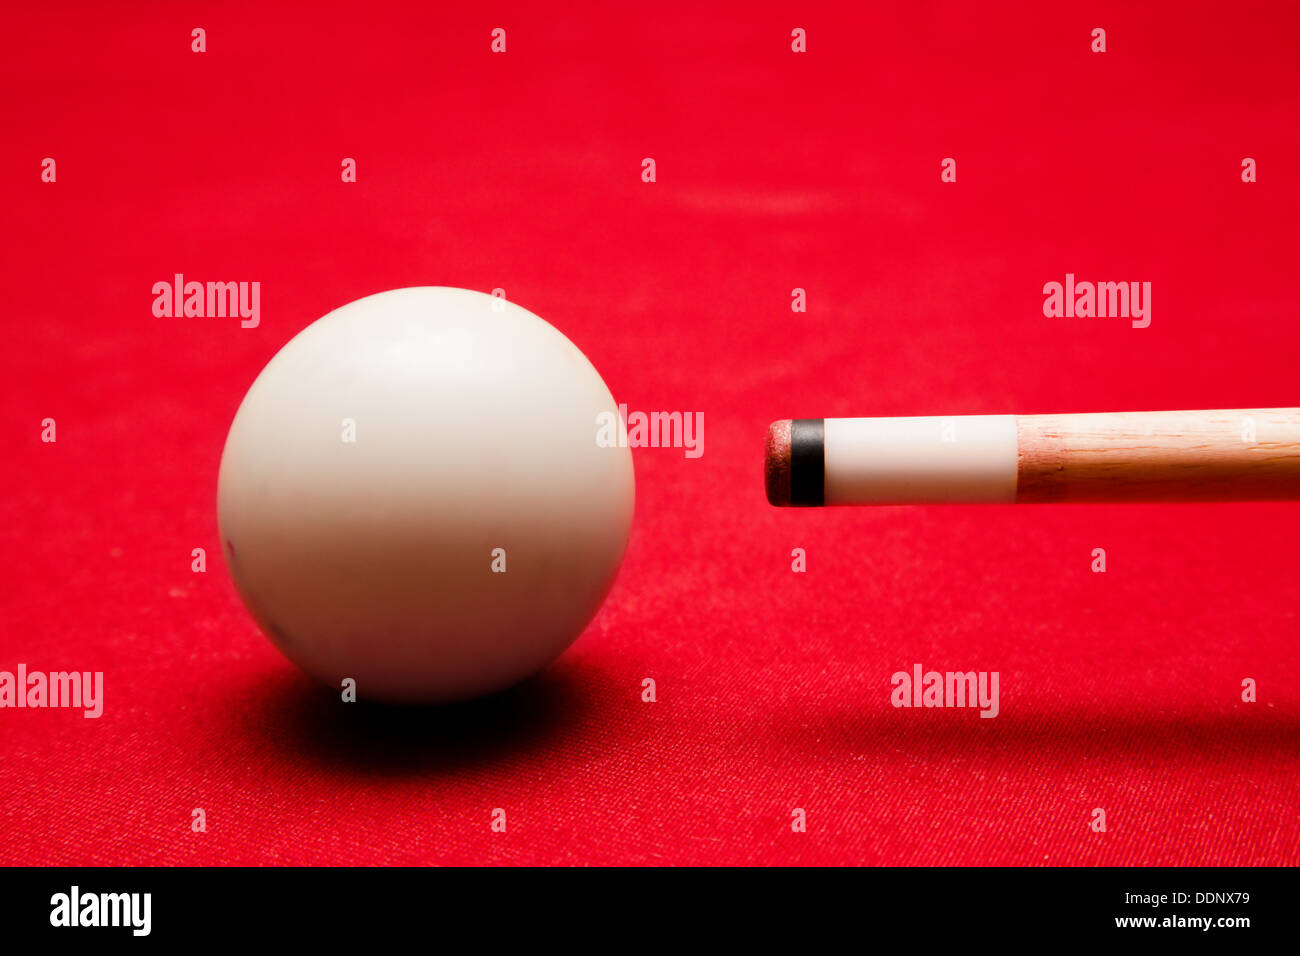 Billiards pool game. Aiming at cue ball. - Stock Image